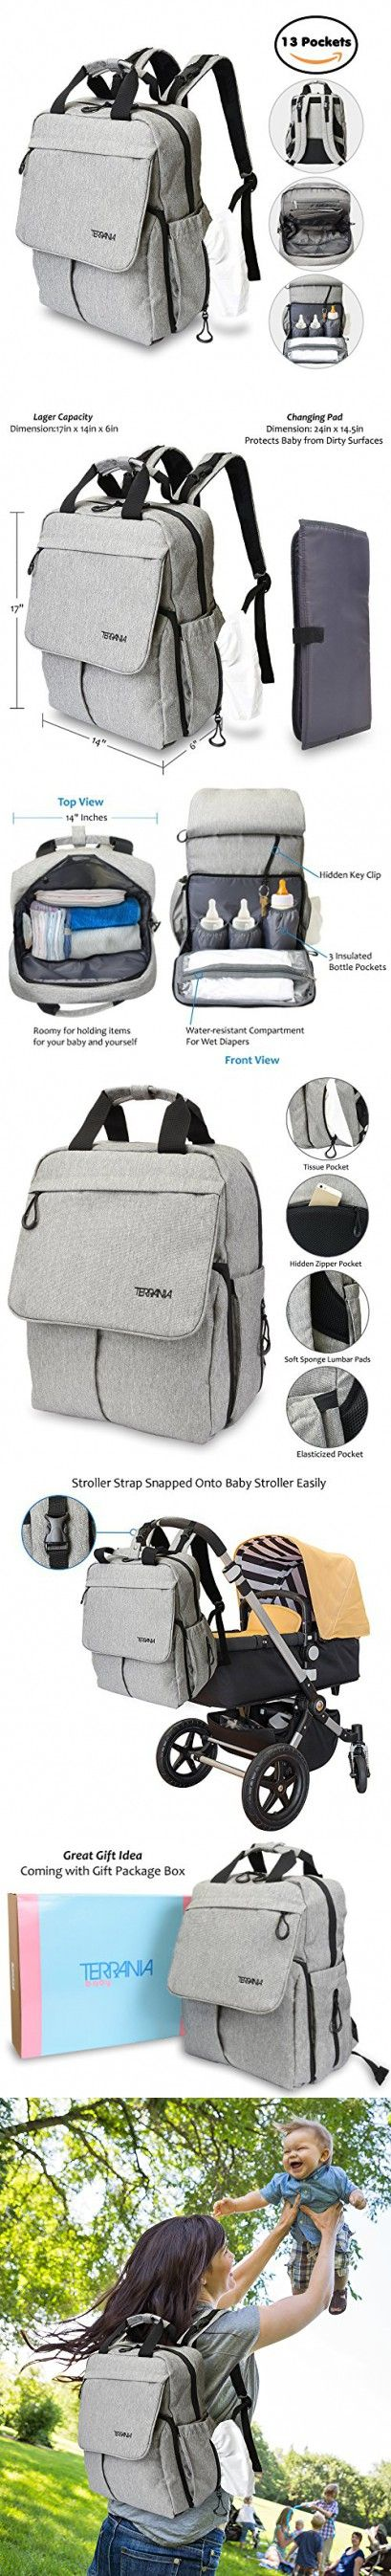 7bc419acba Terrania Nappy Bag Baby Diaper Backpack for Travel Water-resistant Grey